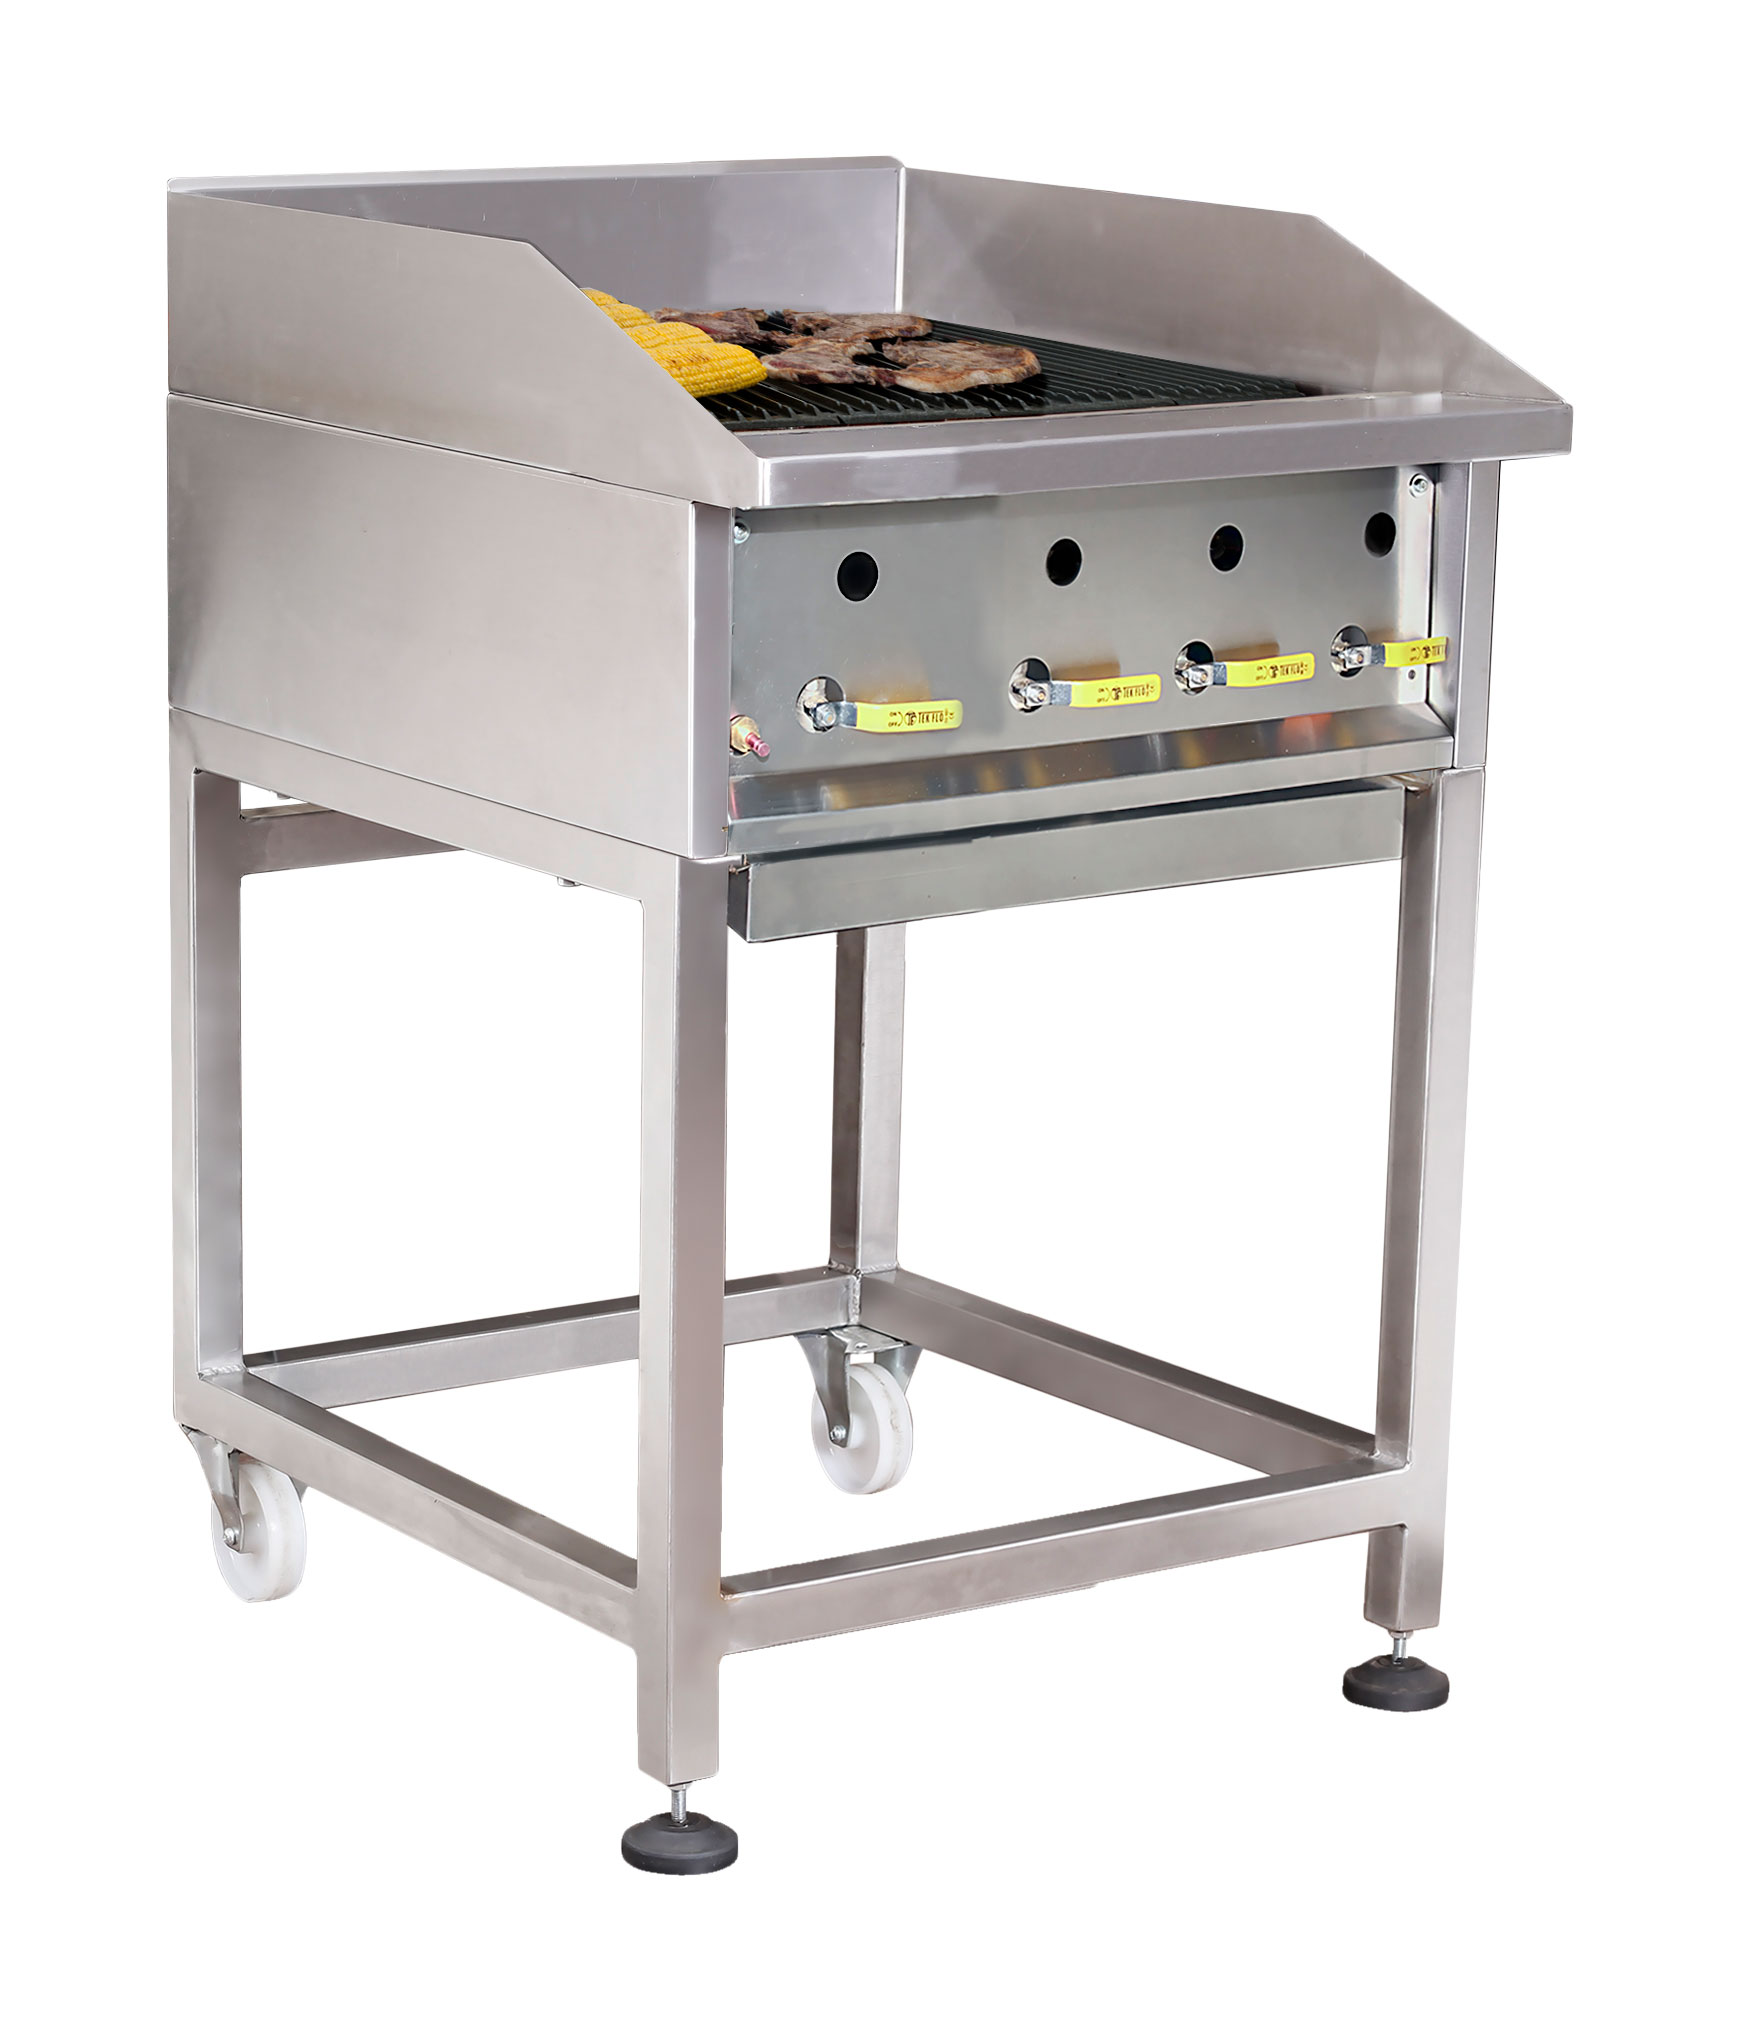 HEAVY DUTY RADIANT GRILLER - GAS - 600